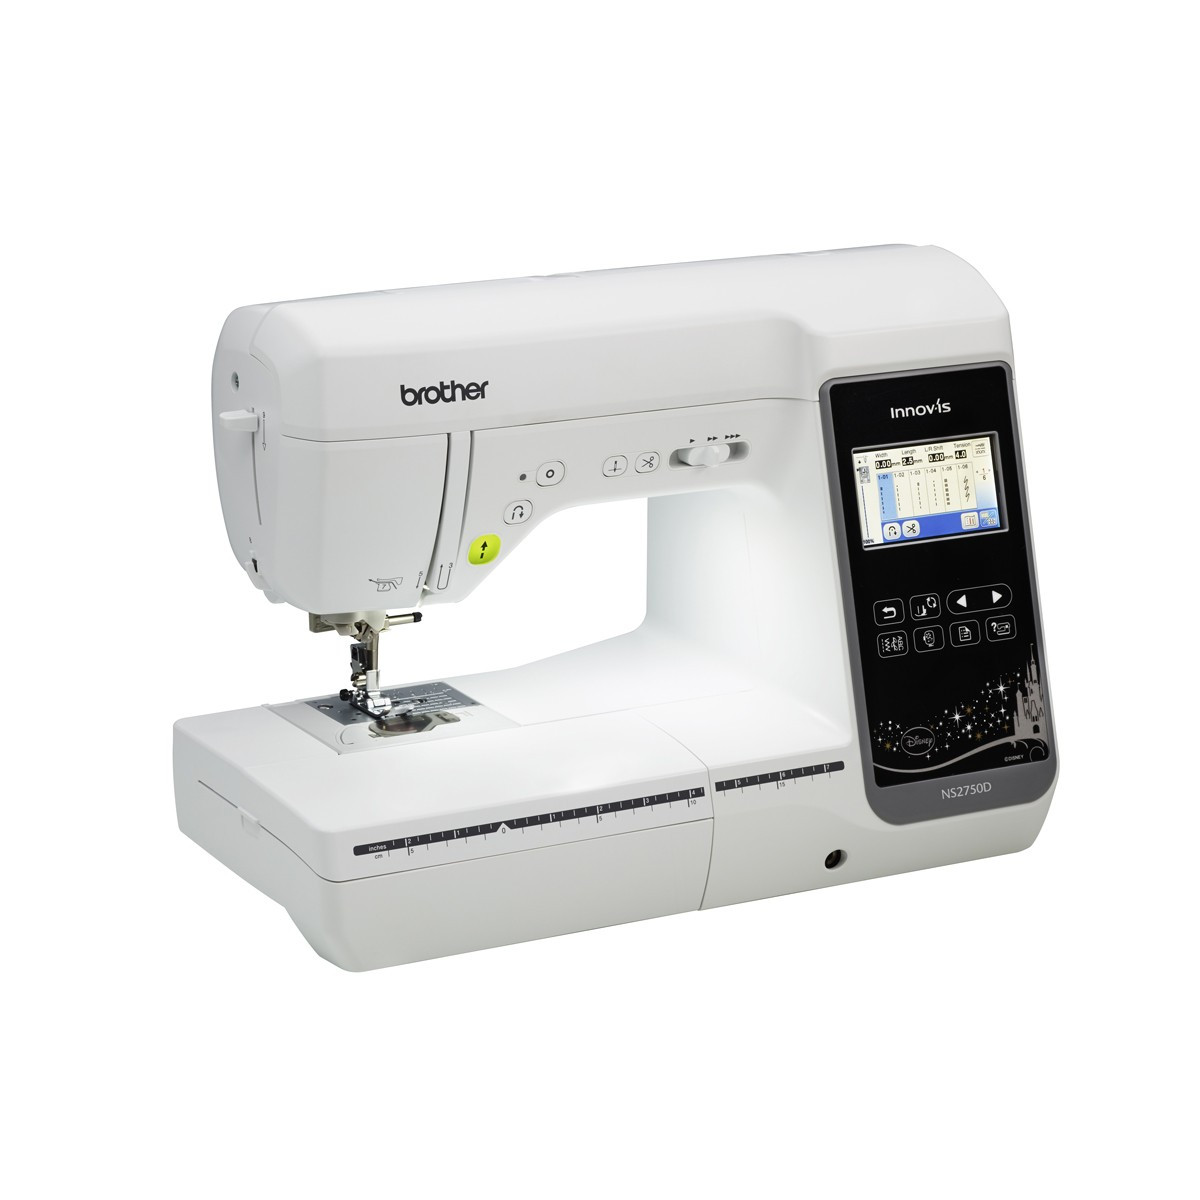 Embroidery Sewing Machine Beautiful Brother Innov is Ns2750d Sewing Quilting & Embroidery Of Wonderful 40 Images Embroidery Sewing Machine